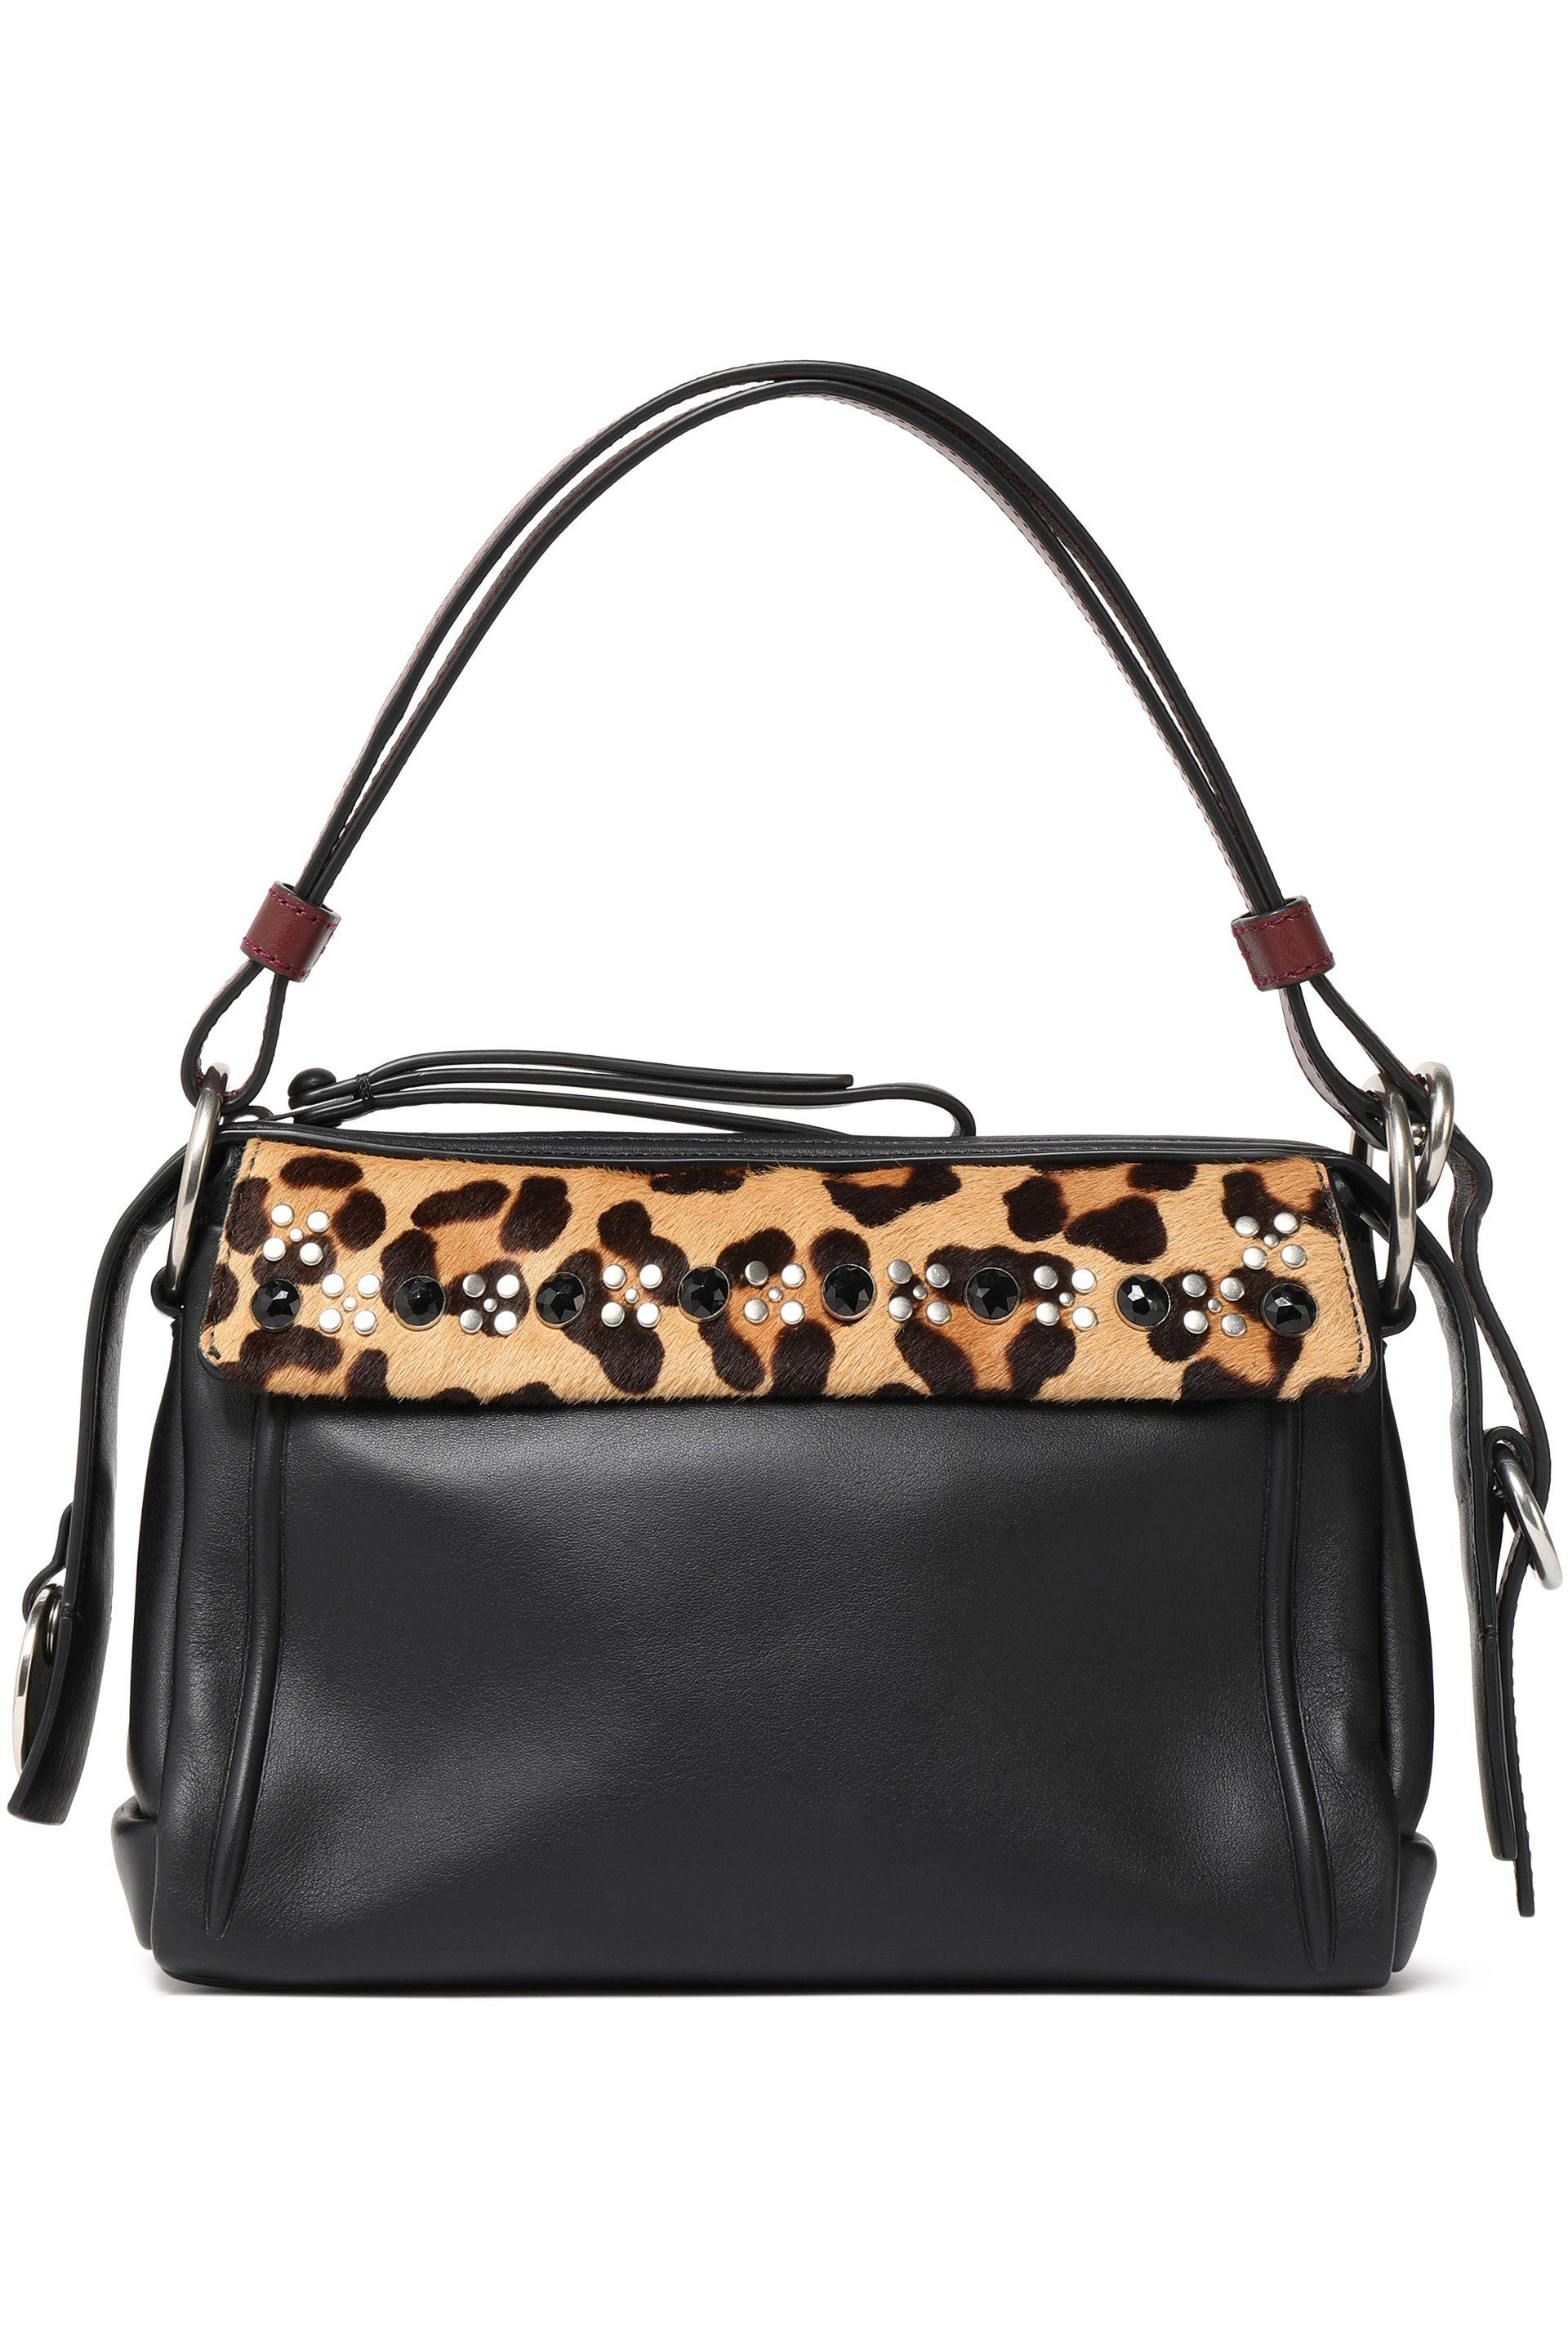 Marc By Marc Jacobs Woman Embellished Leopard-print Calf Hair And Leather Pouch Animal Print Size Marc Jacobs FxtcqUNIhn